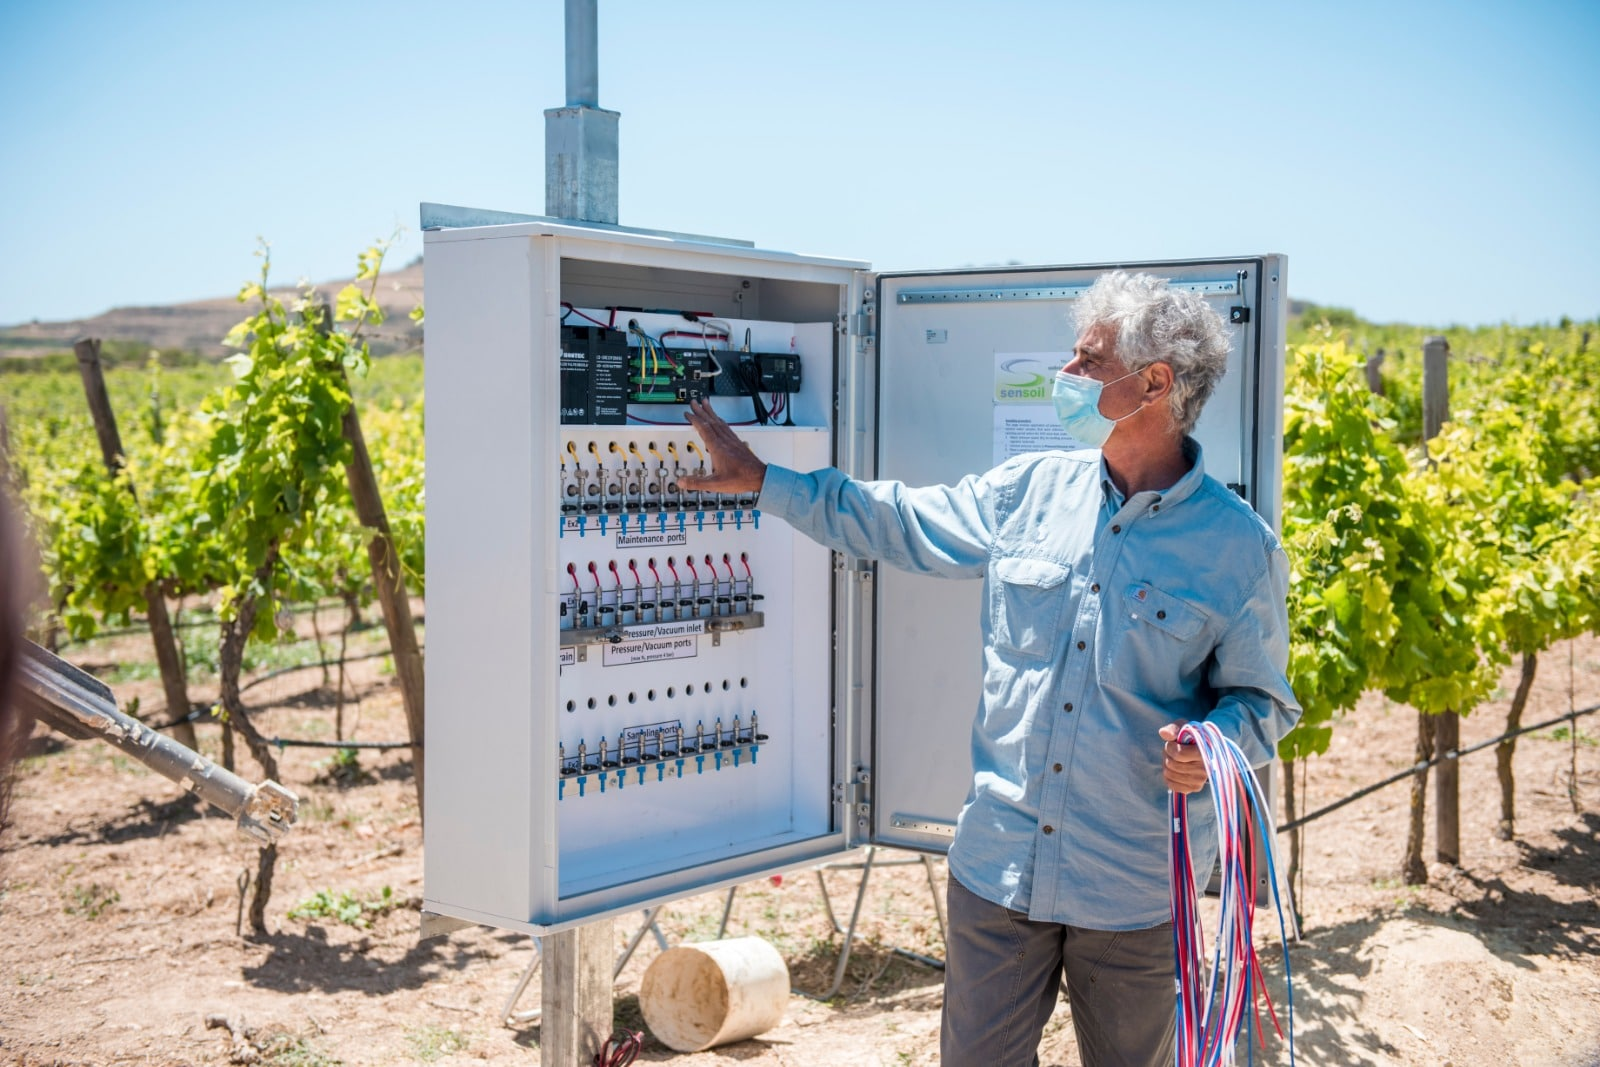 Nationwide monitoring system to safeguard groundwater quality